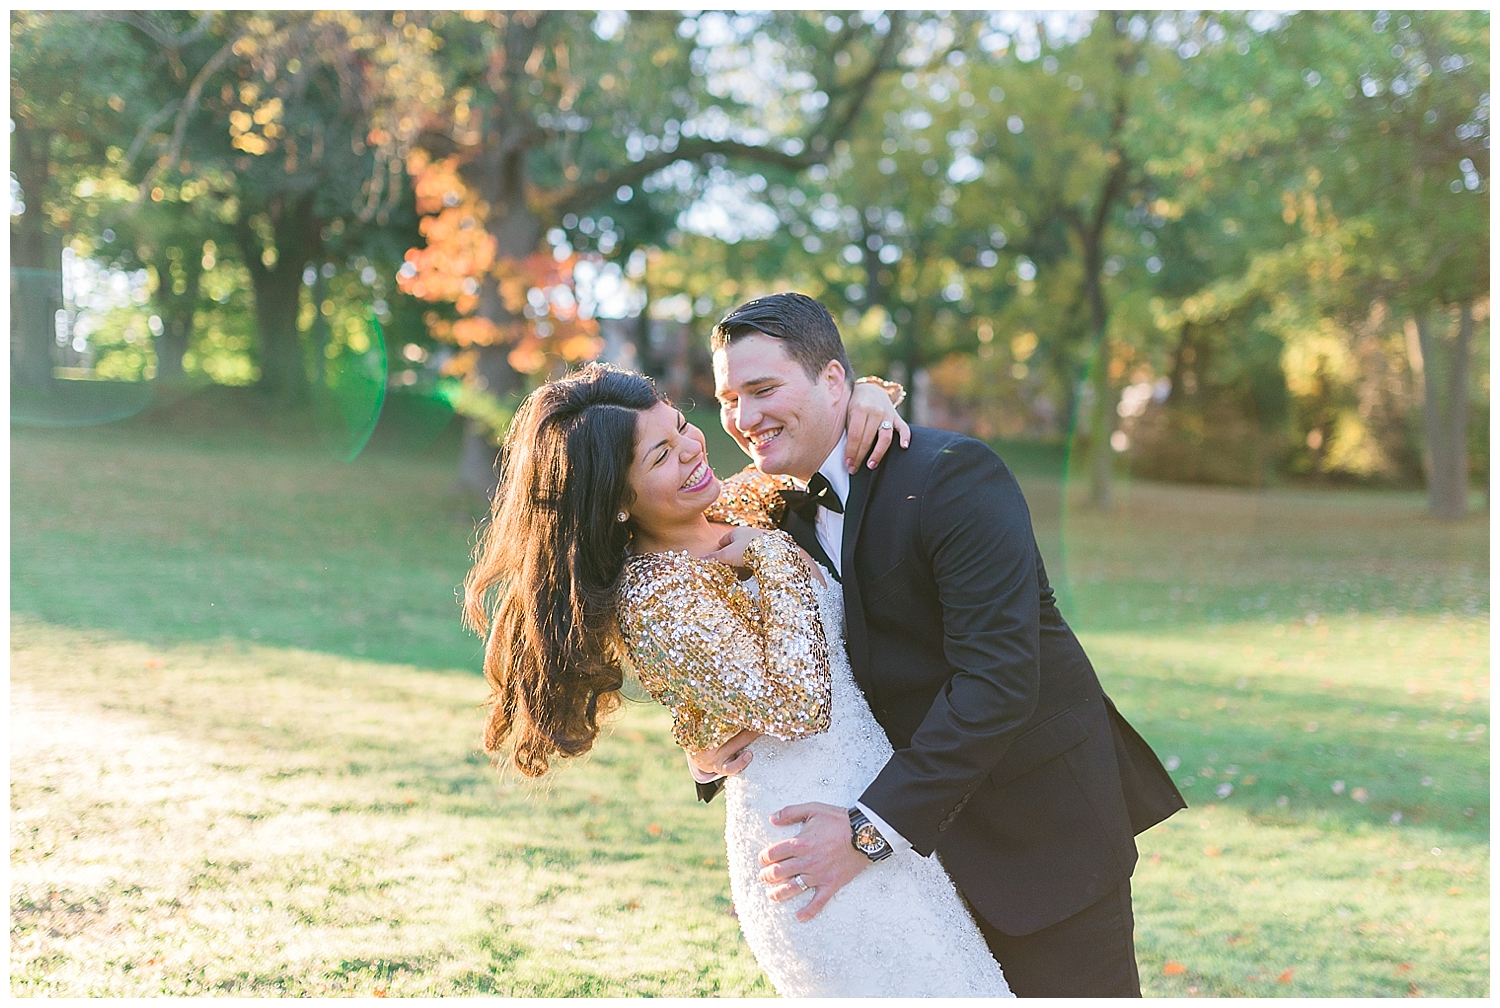 Red Oak Weddings: NJ, NY + PA Wedding Inspiration | Jennifer Larsen Photography